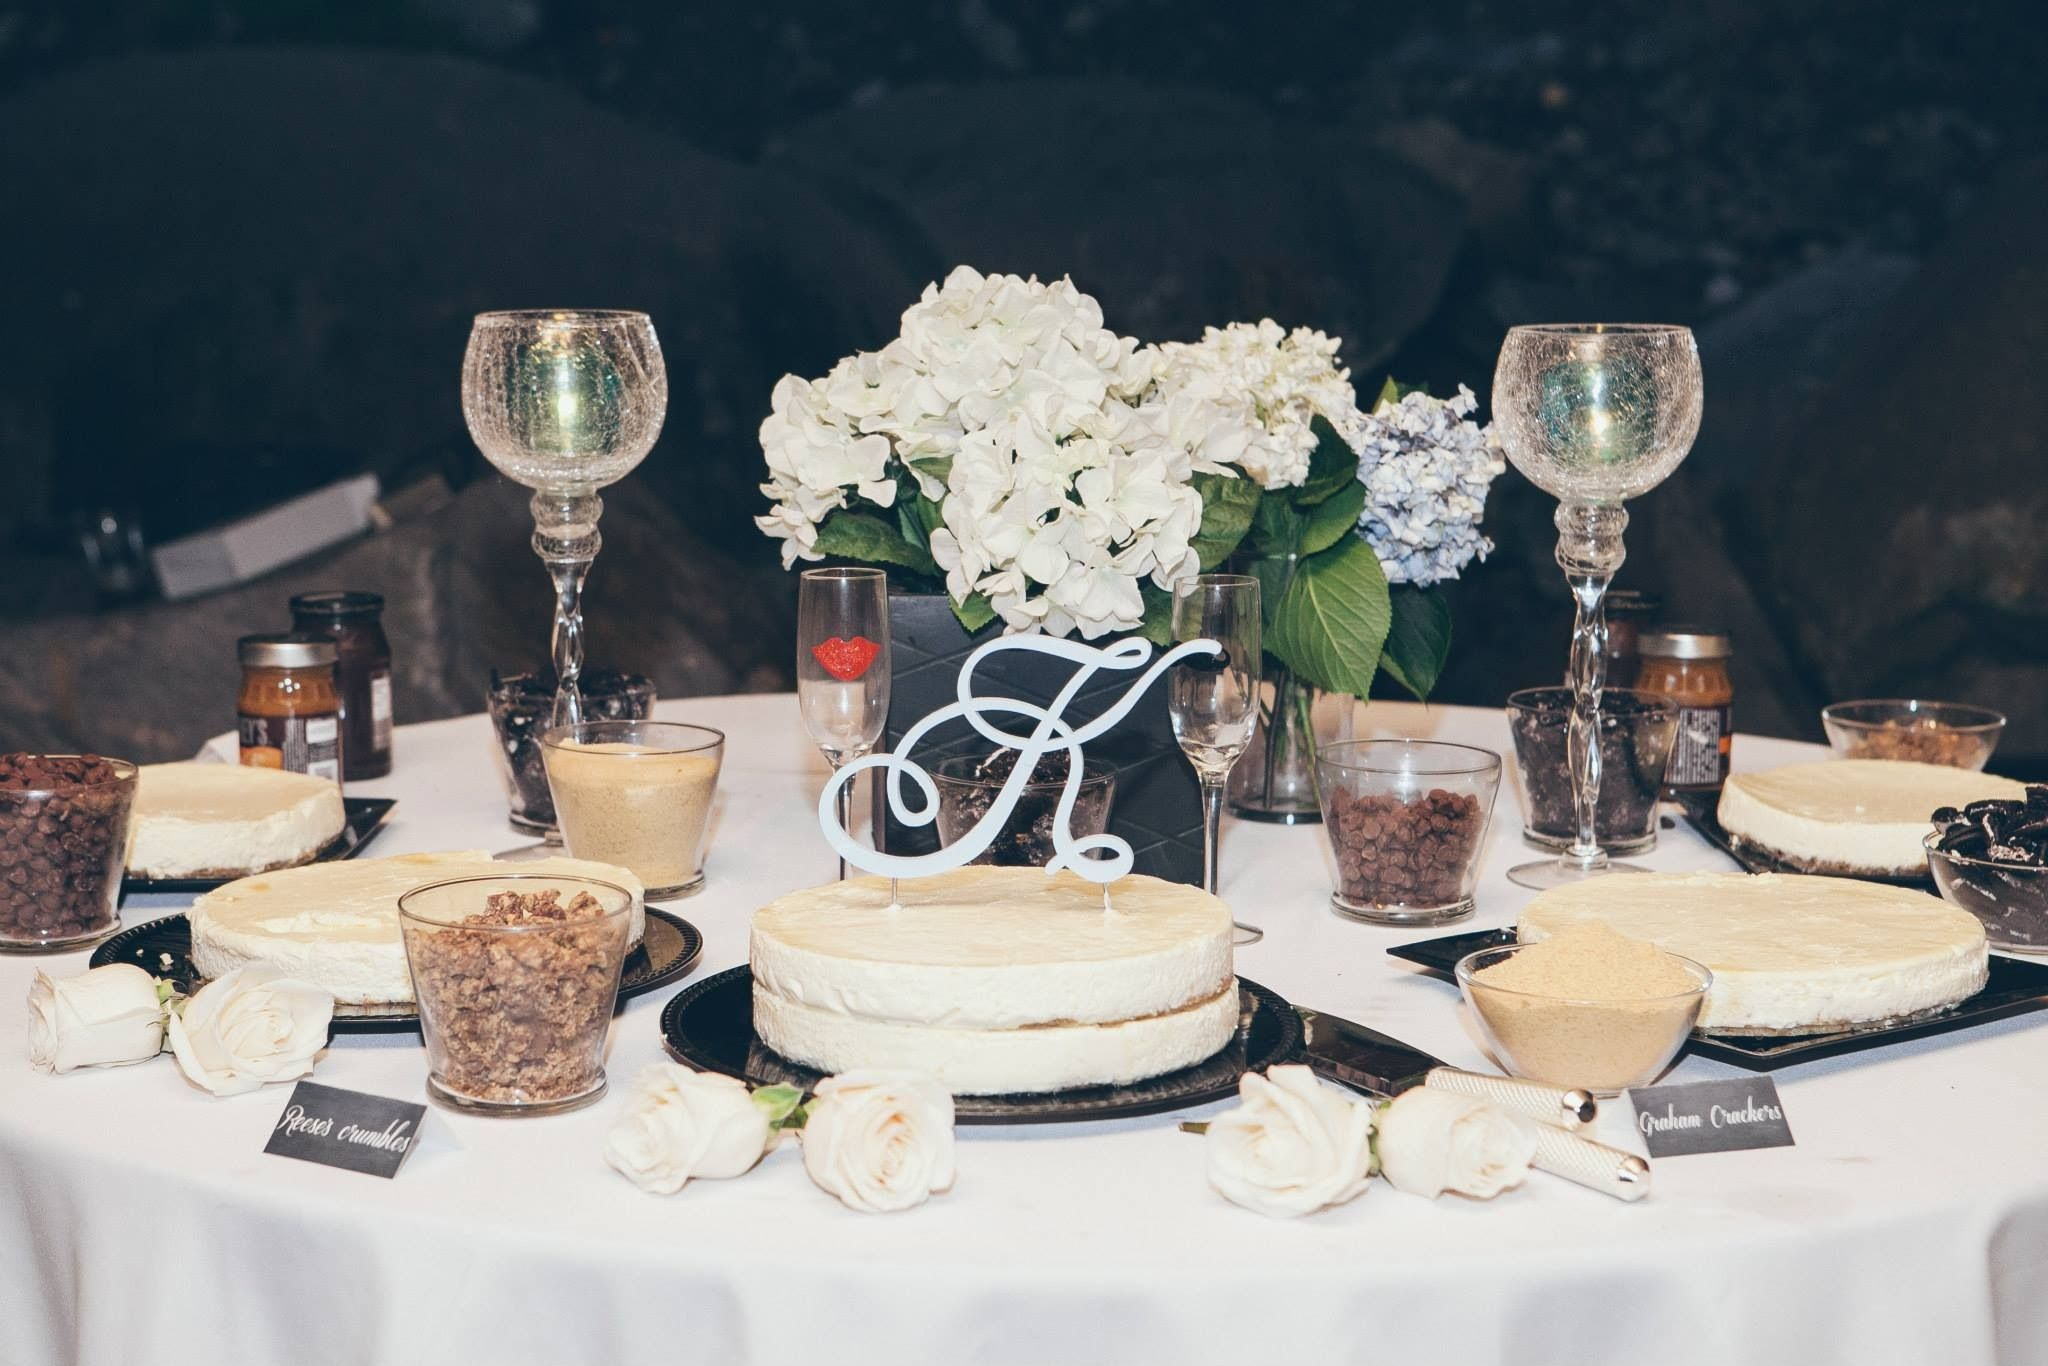 Wedding Cheesecake Bar With Fresh Toppings And Chalkboard